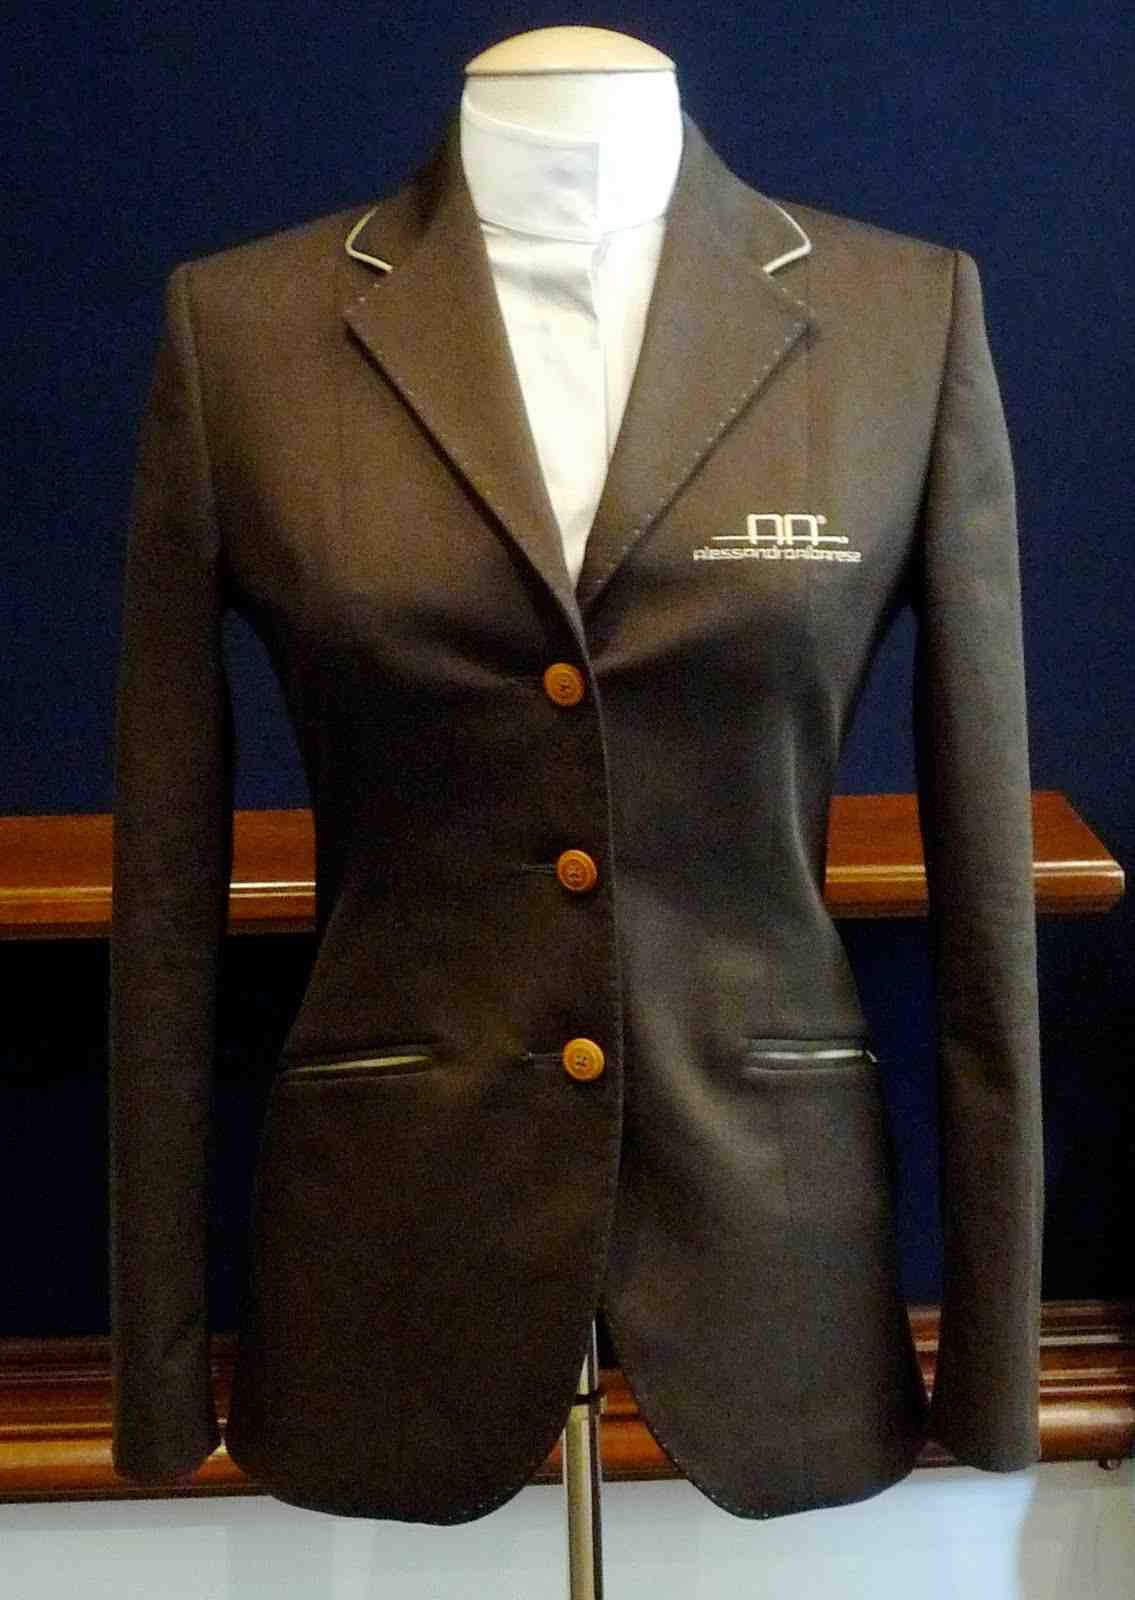 Alessandro Albanese Oughton Limited Equestrian Outfits Fashion Show Jackets